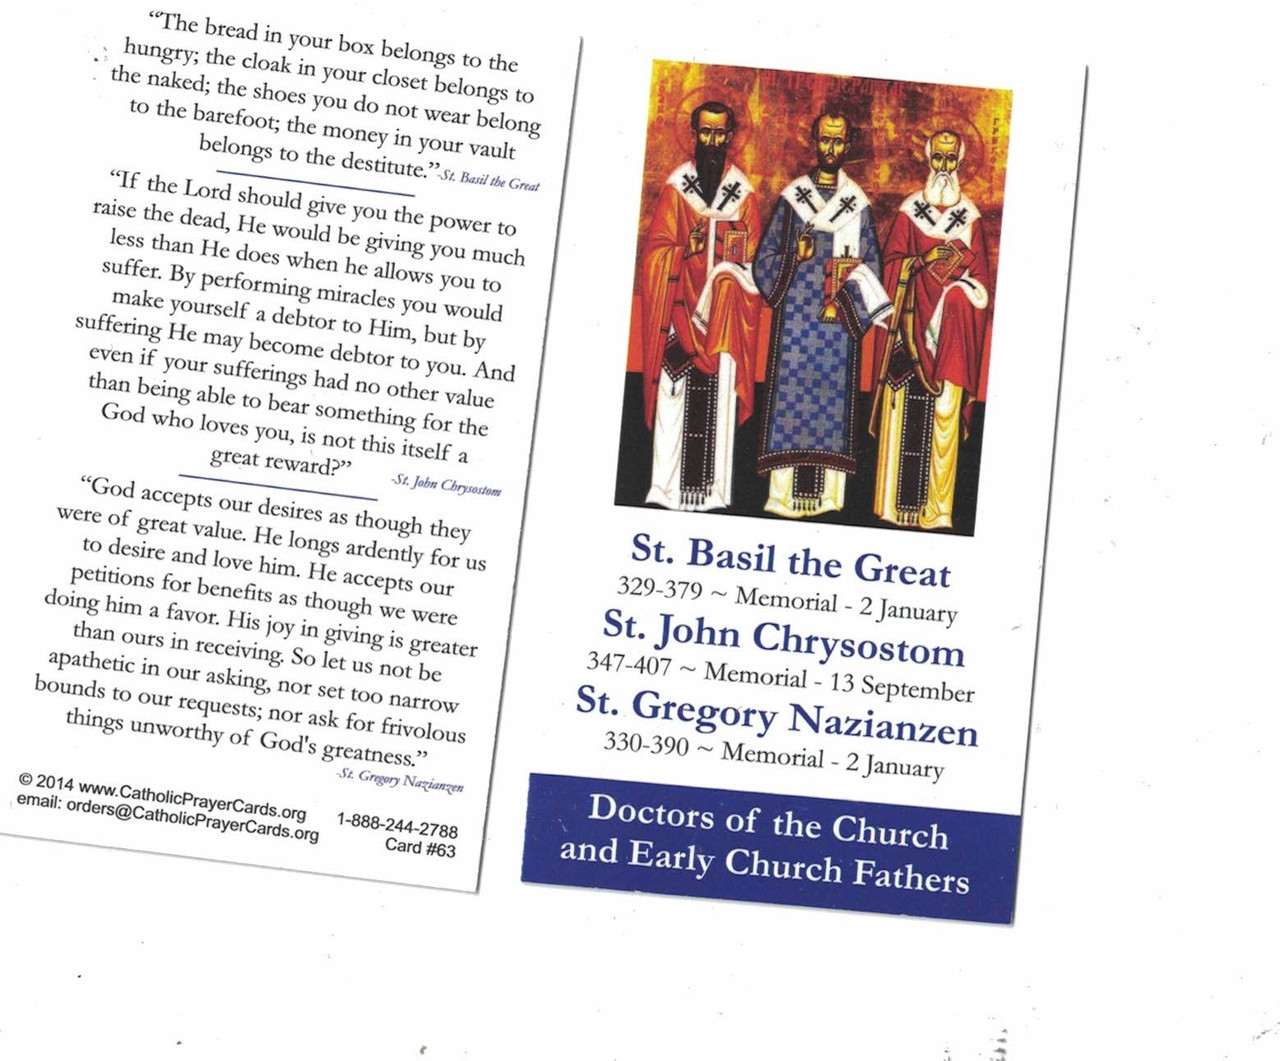 Doctors of the Church and Early Church Fathers Prayer Card